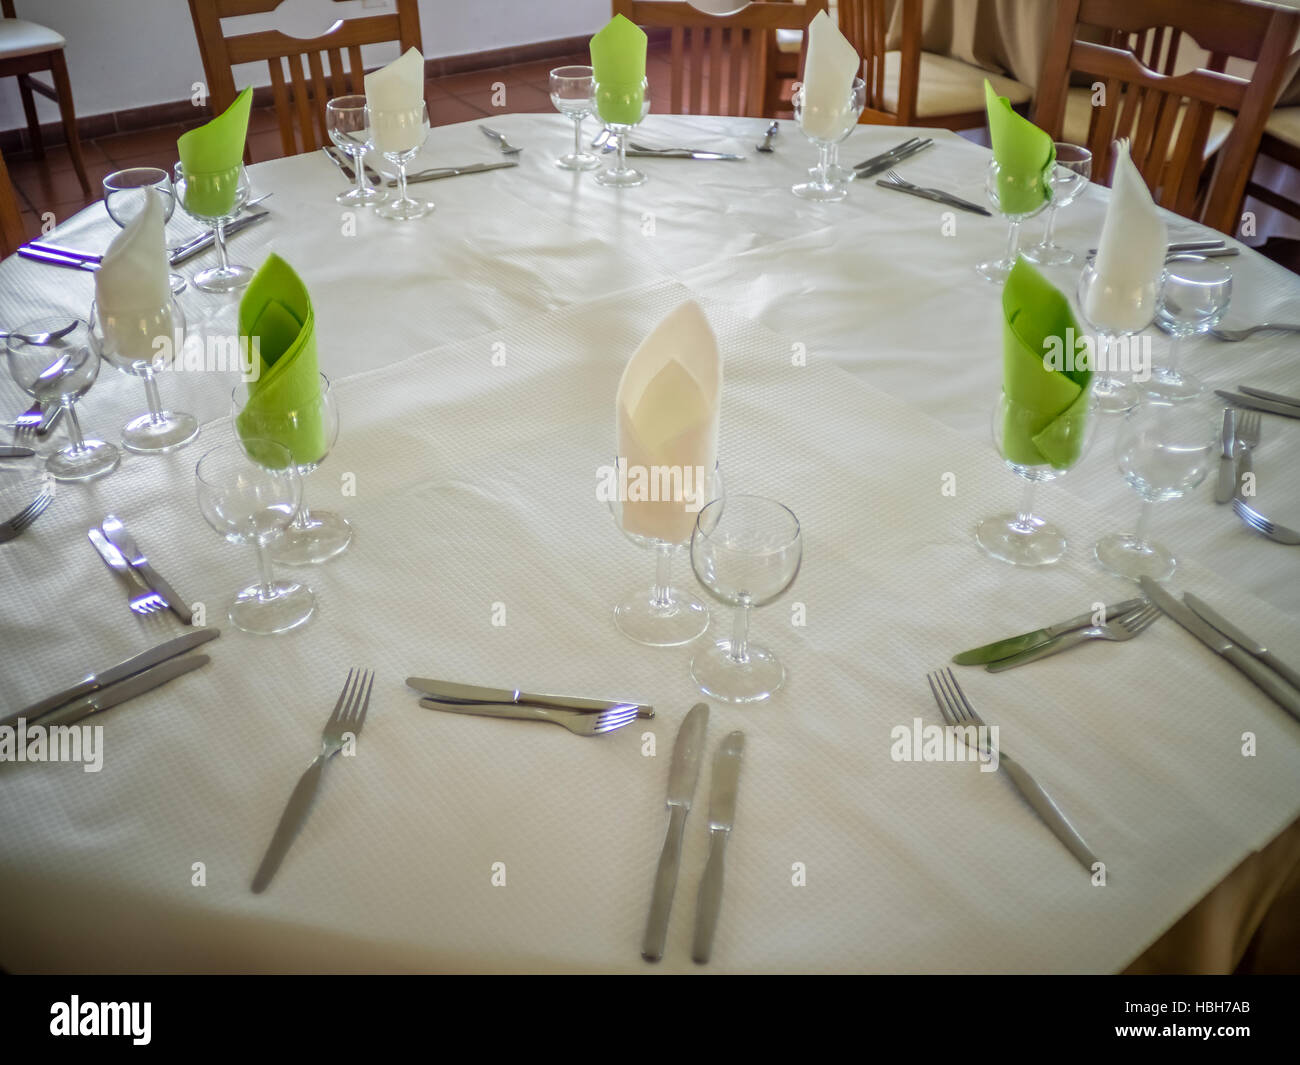 Restaurant table setup - Stock Image